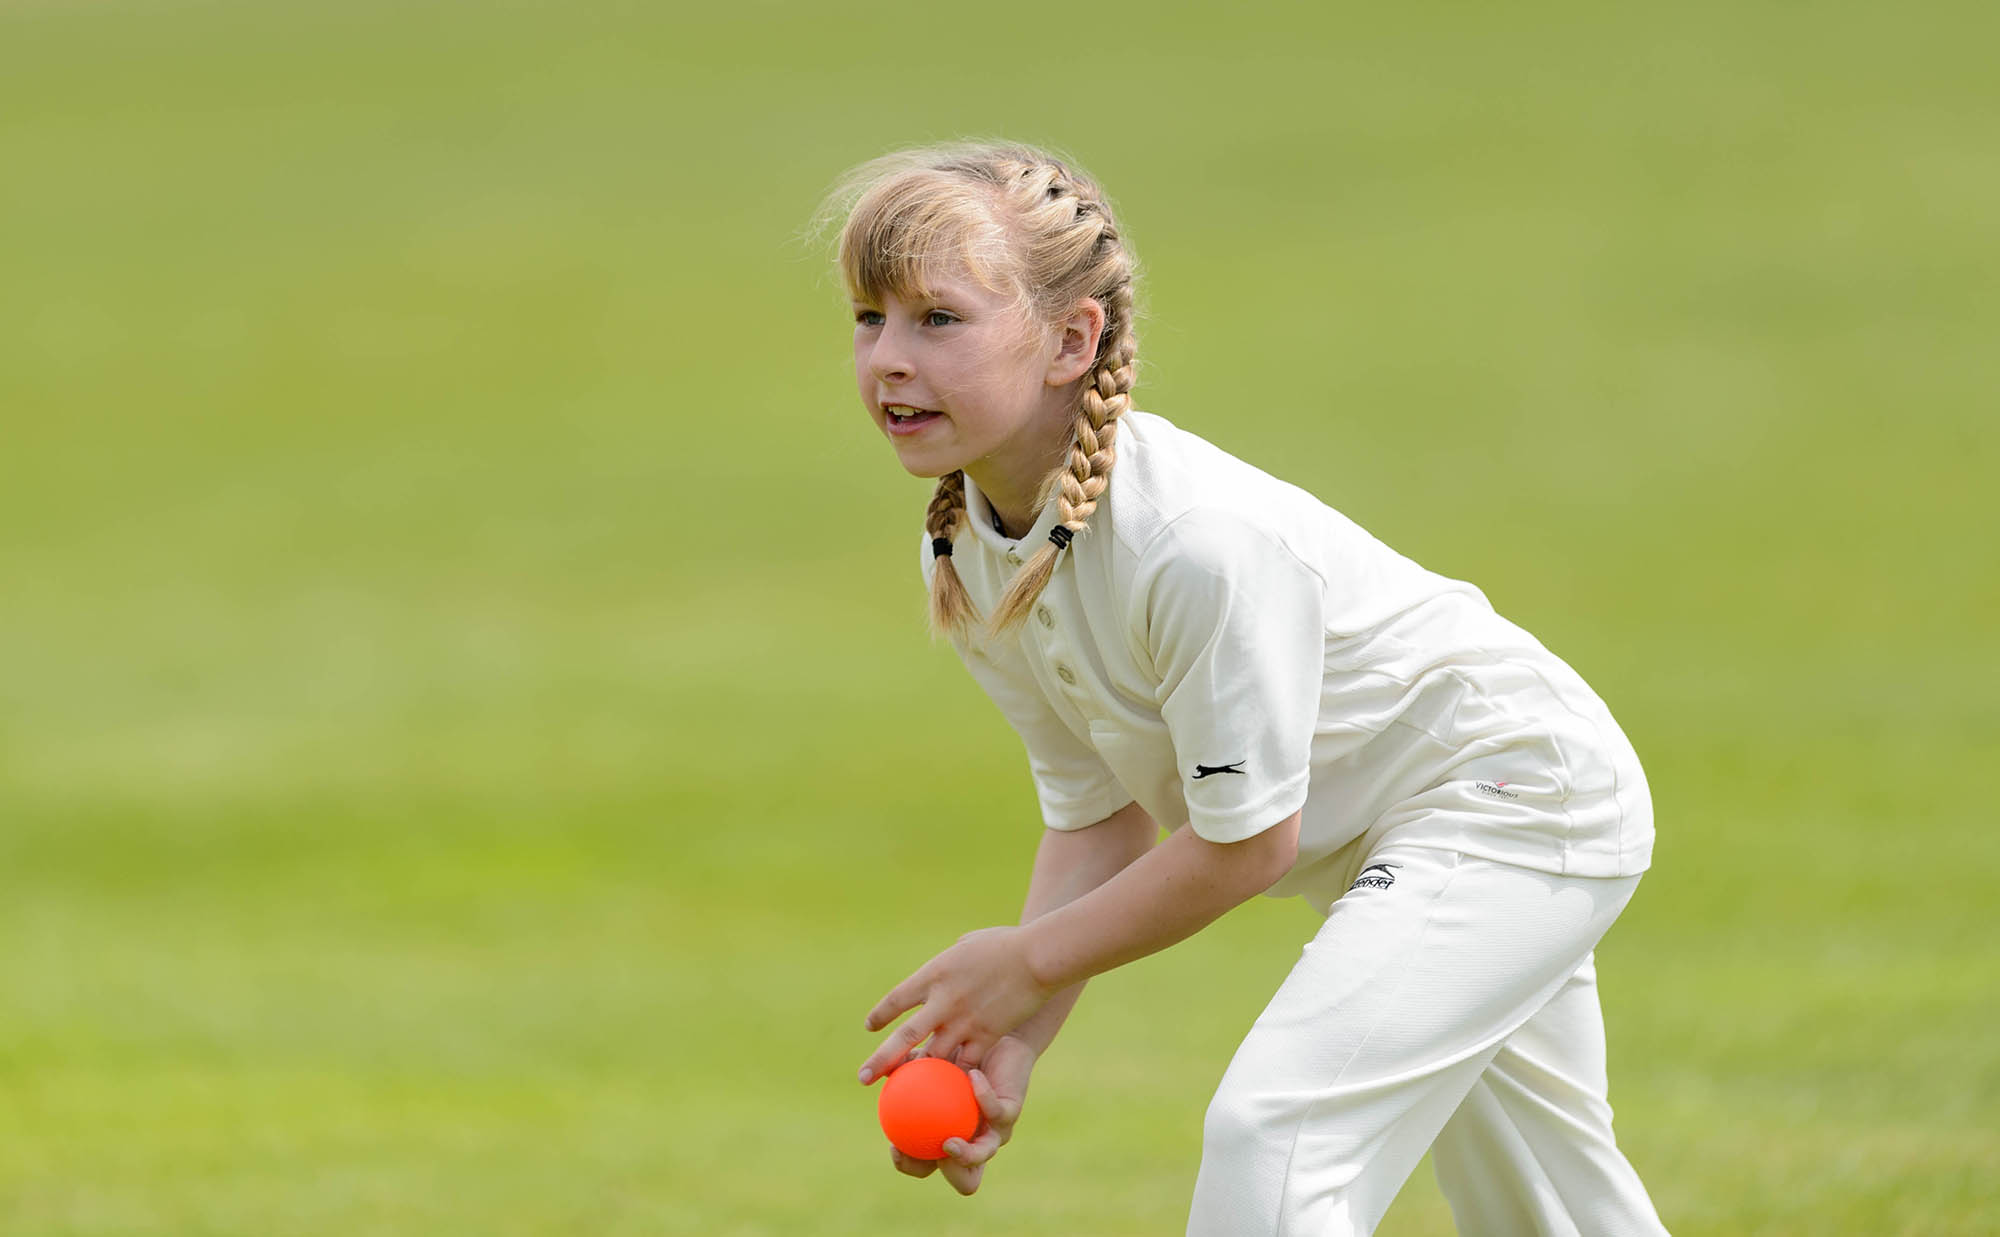 girl in cricket whites with ball in hand